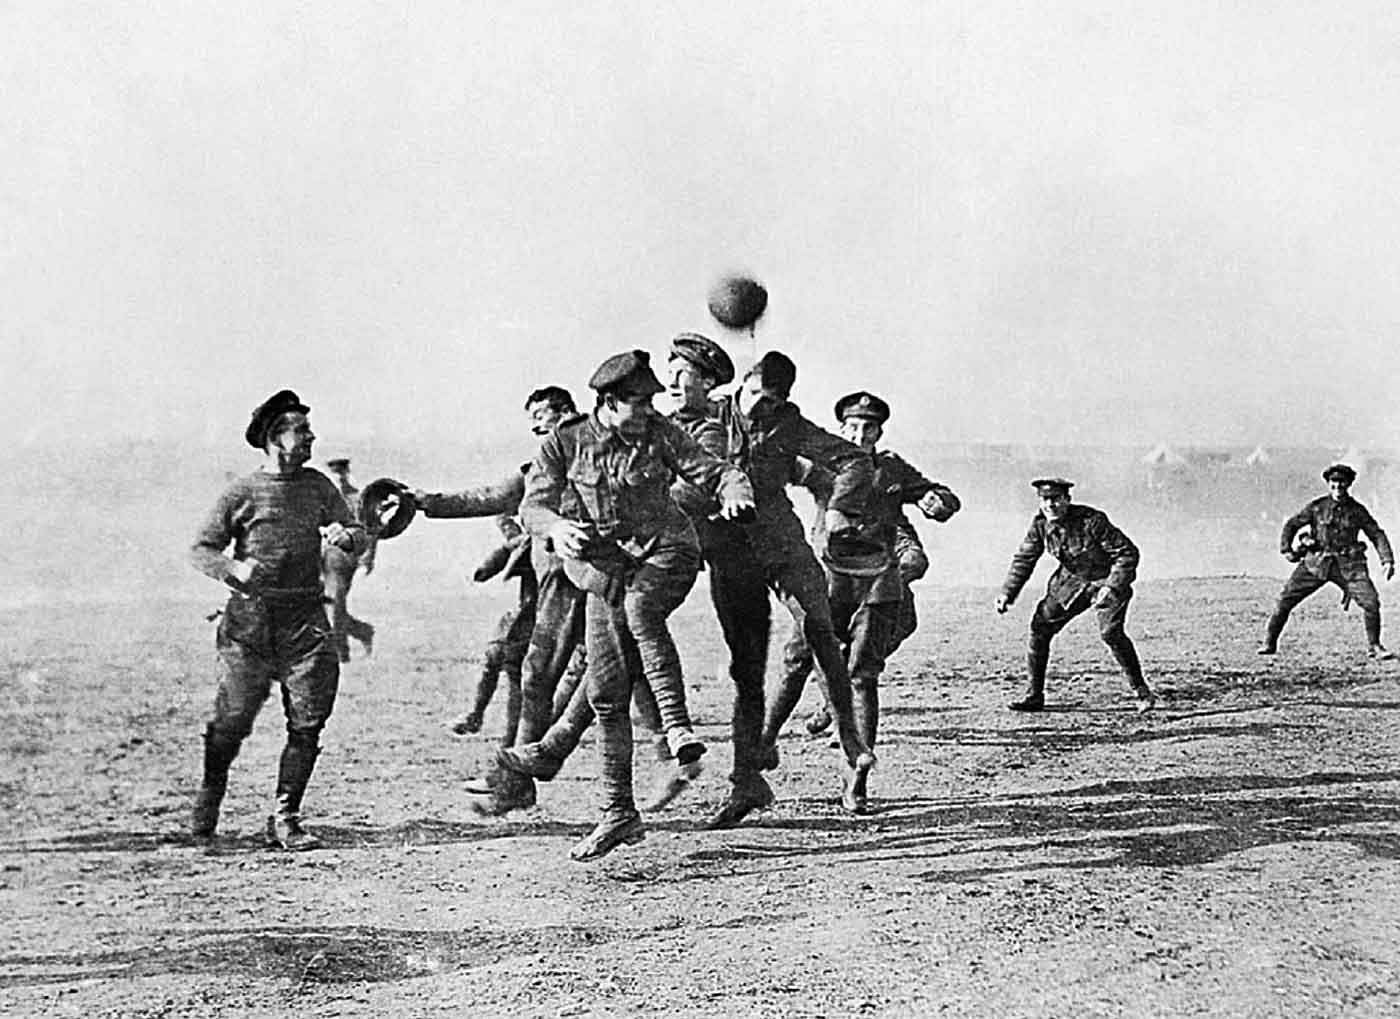 If only for a day: the Christmas truce of 1914